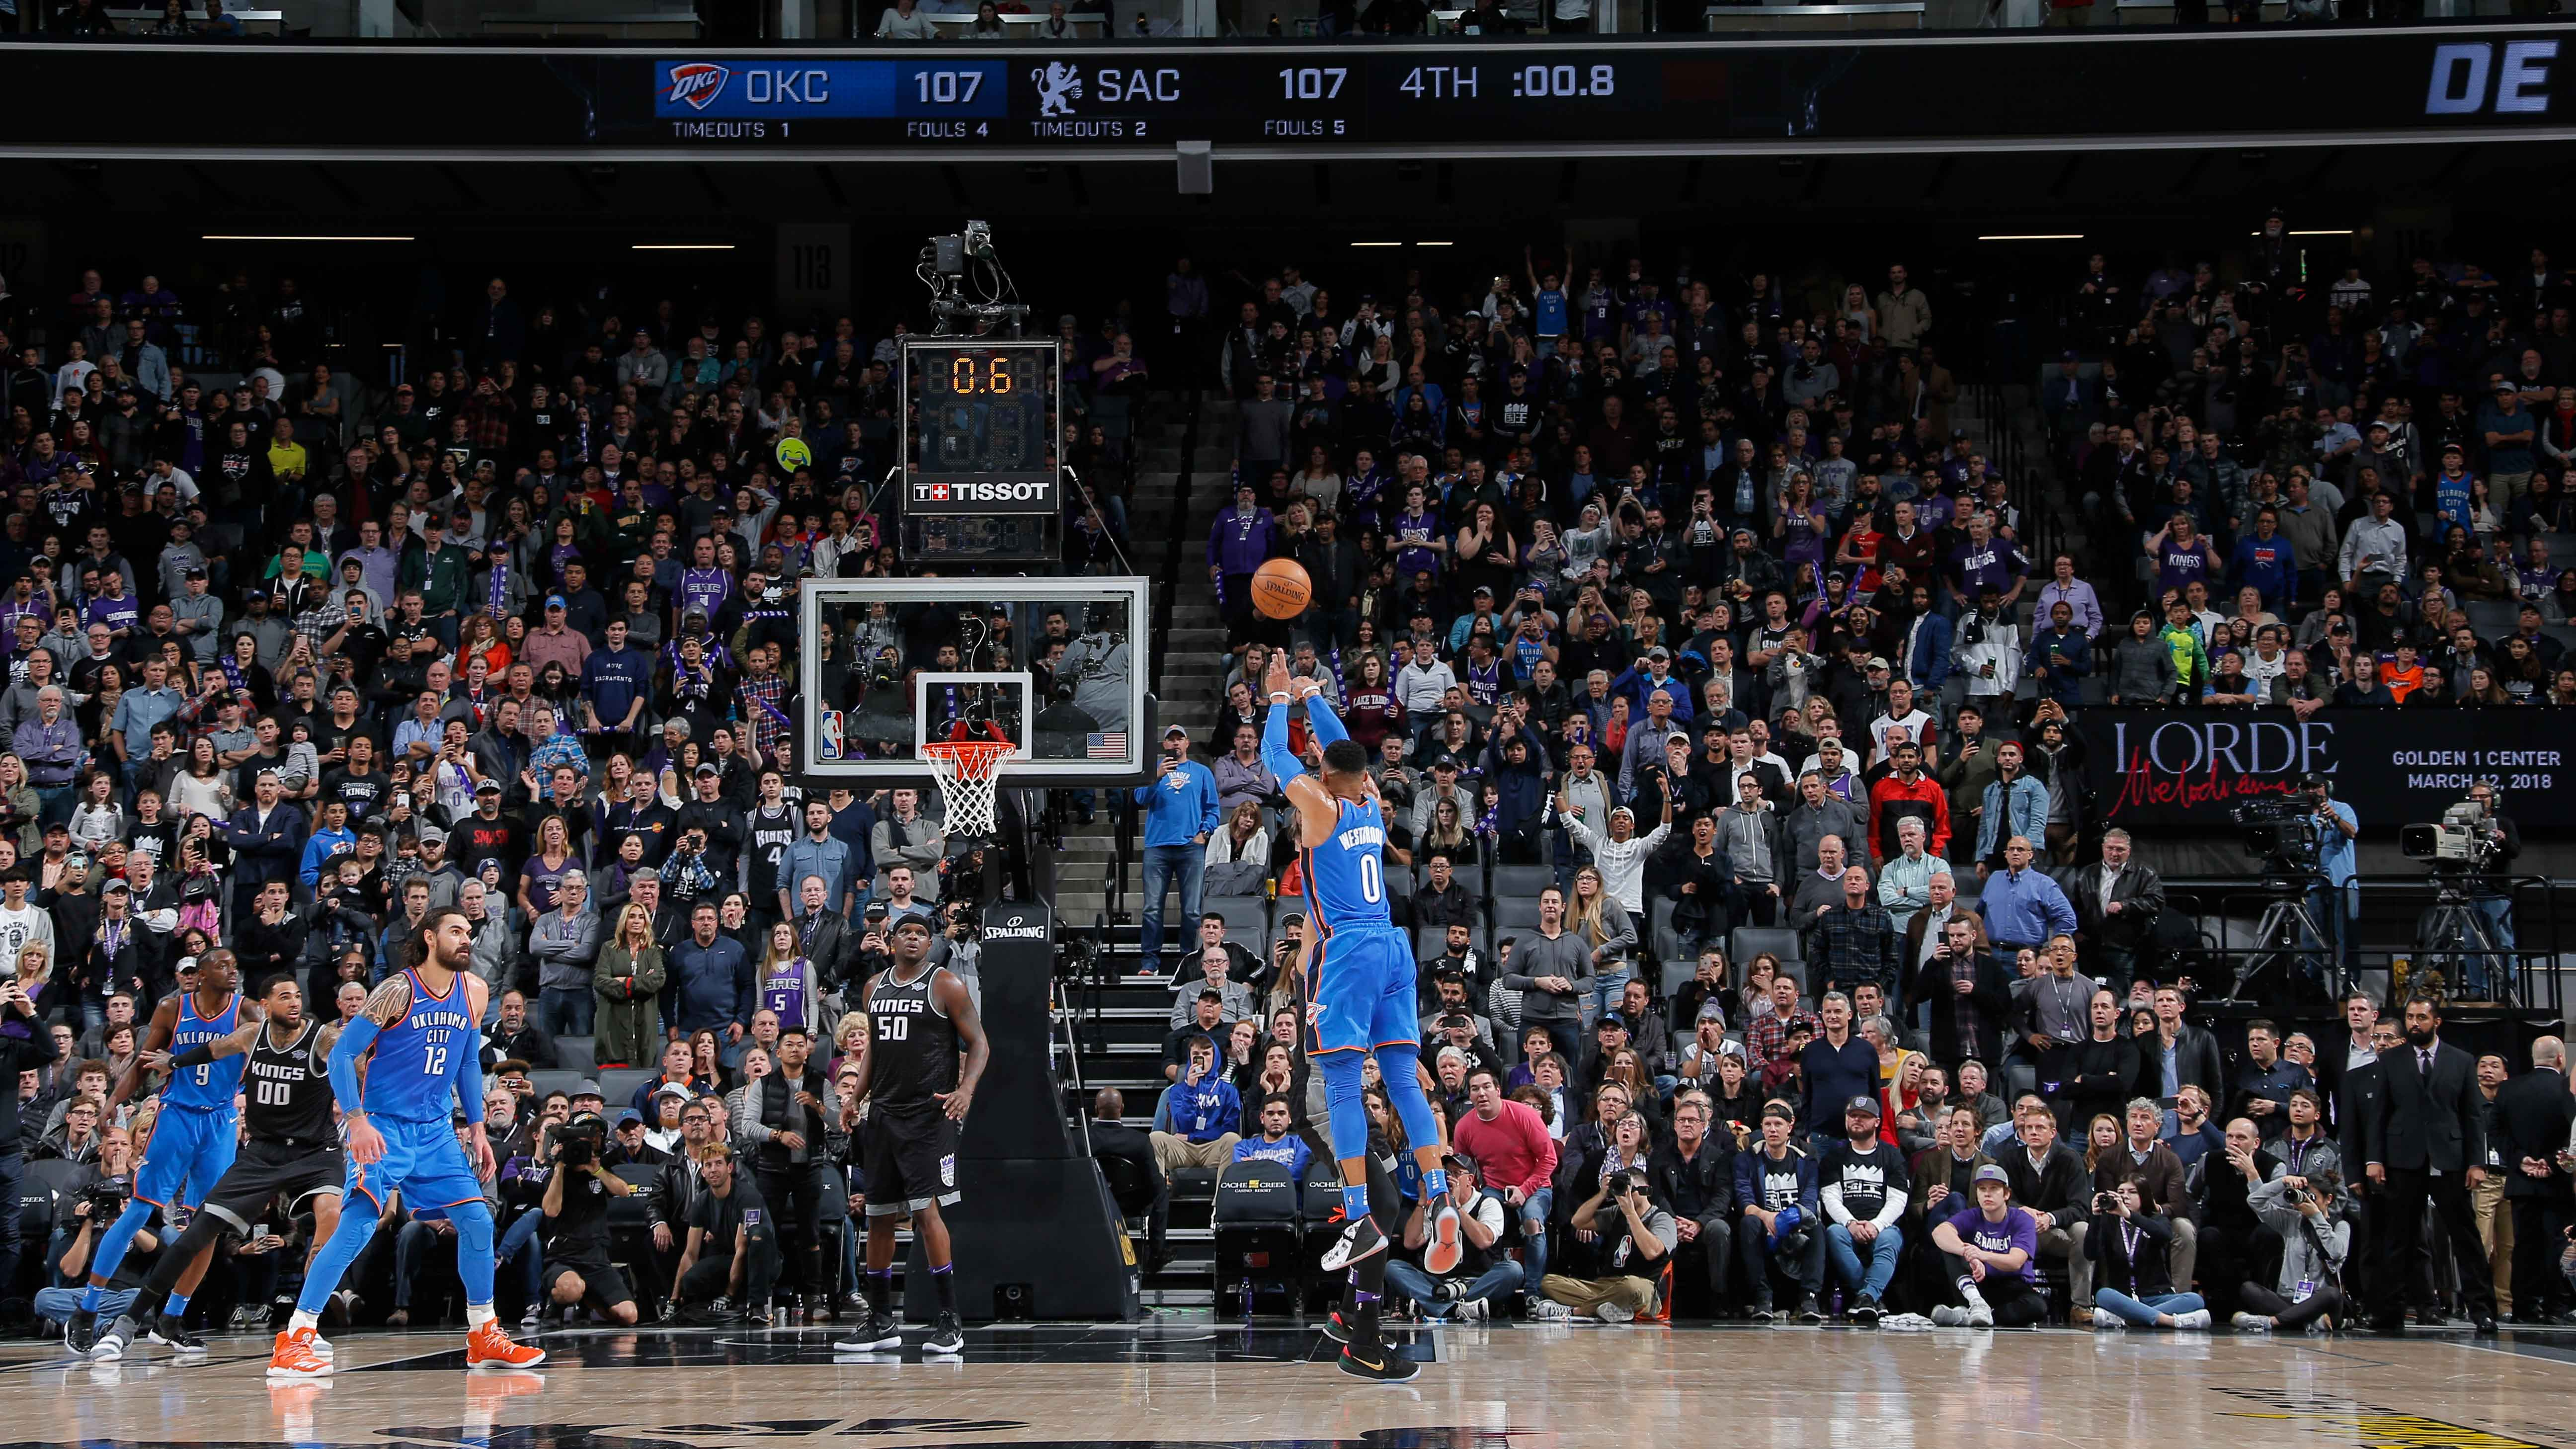 Horry Scale: Oklahoma City's Russell Westbrook's buzzer-beater ...